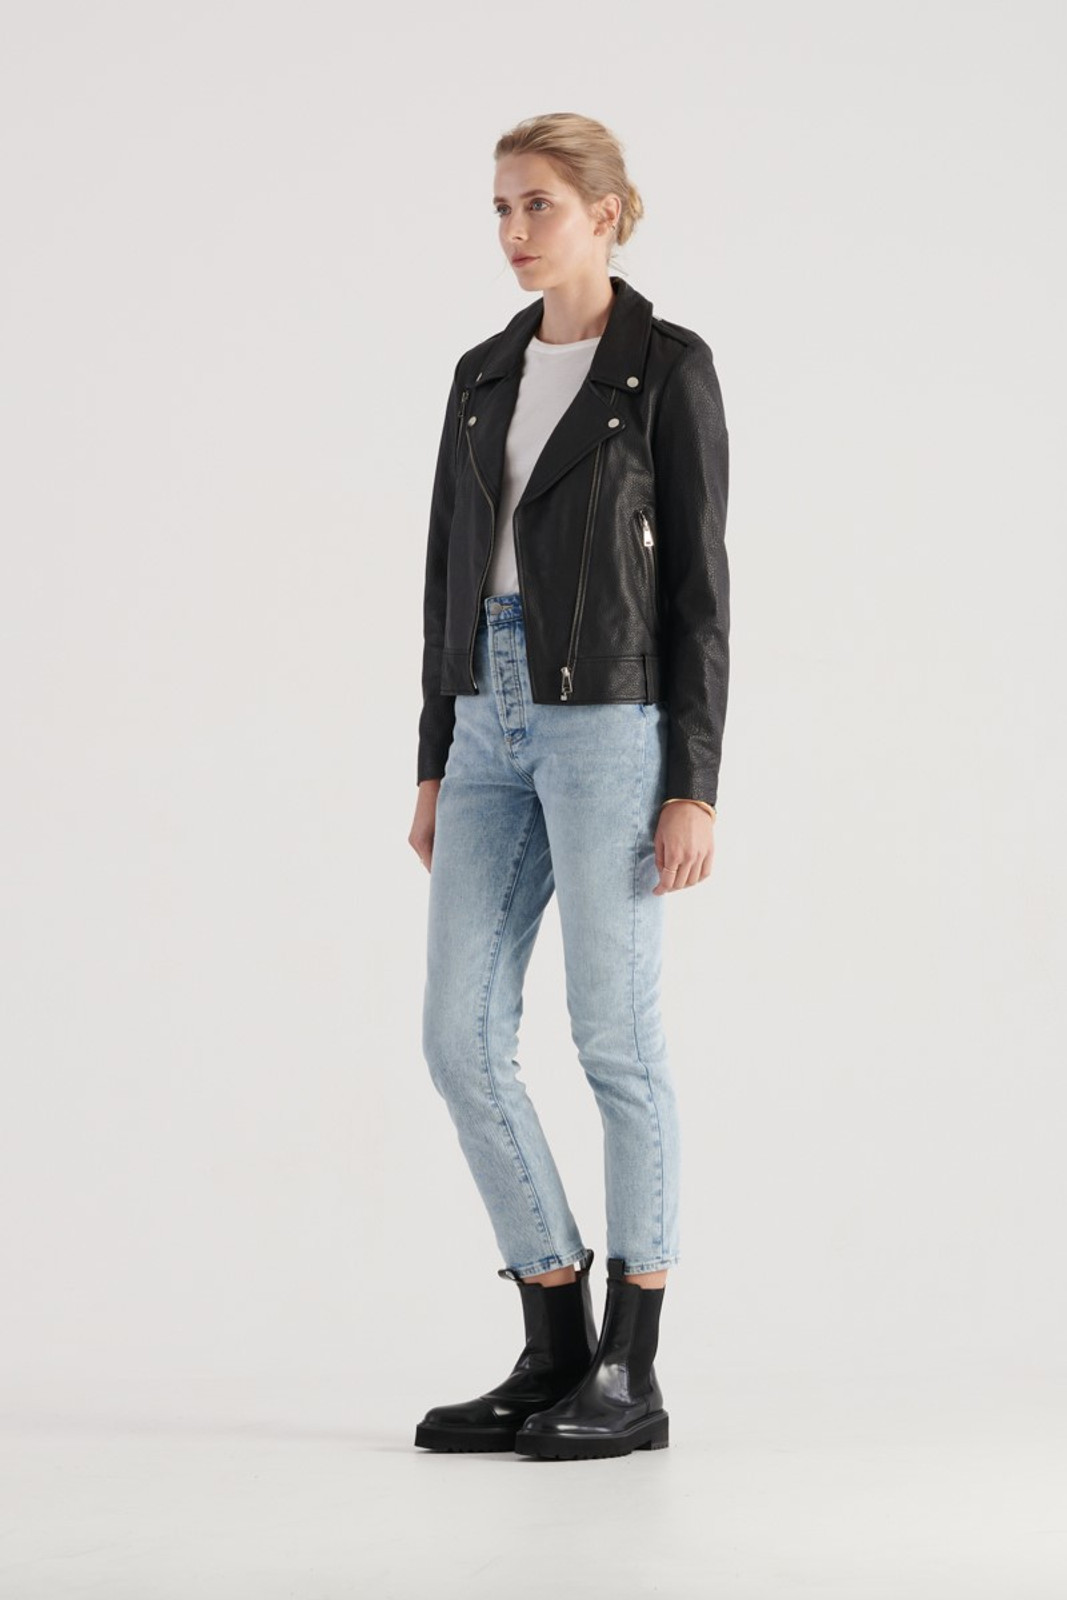 Elka Collective WOMENS Black Carrie Leather Jacket 2